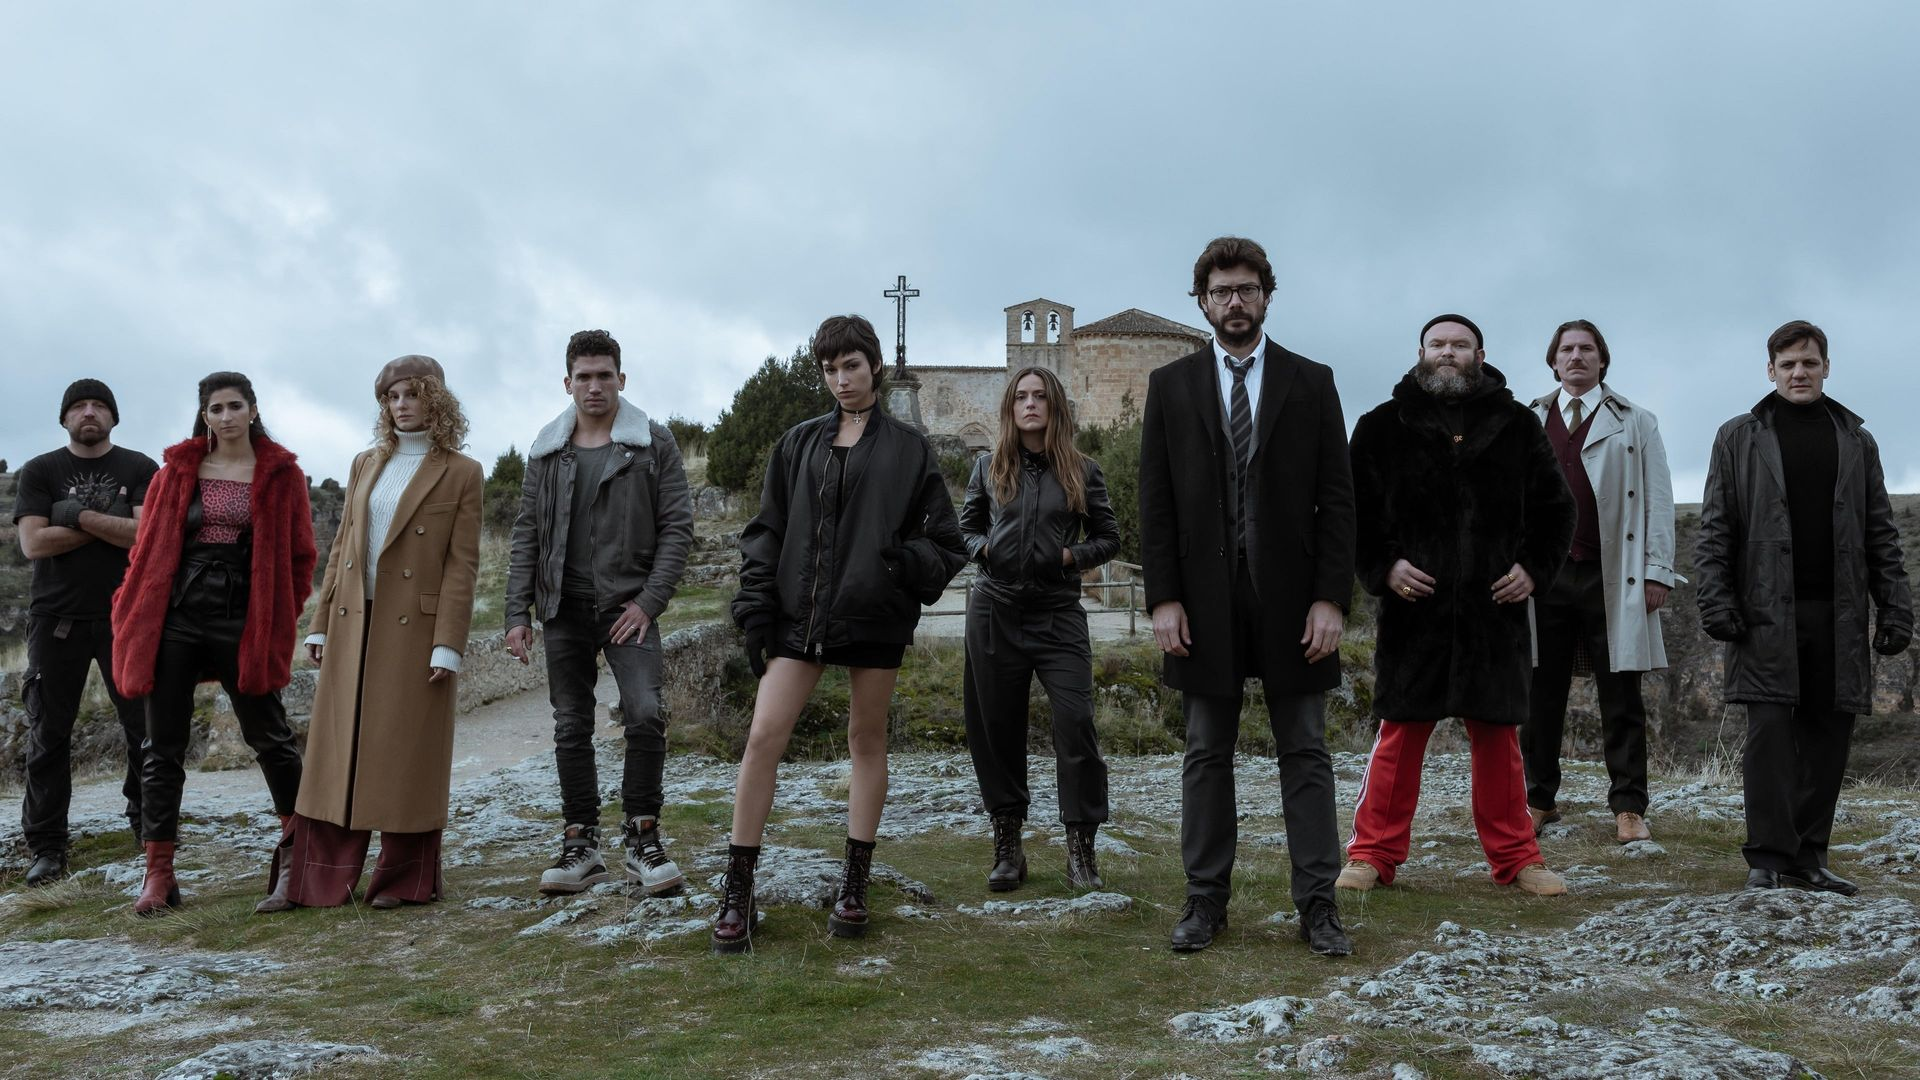 Money Heist Season 3 trailer out now, releases late July